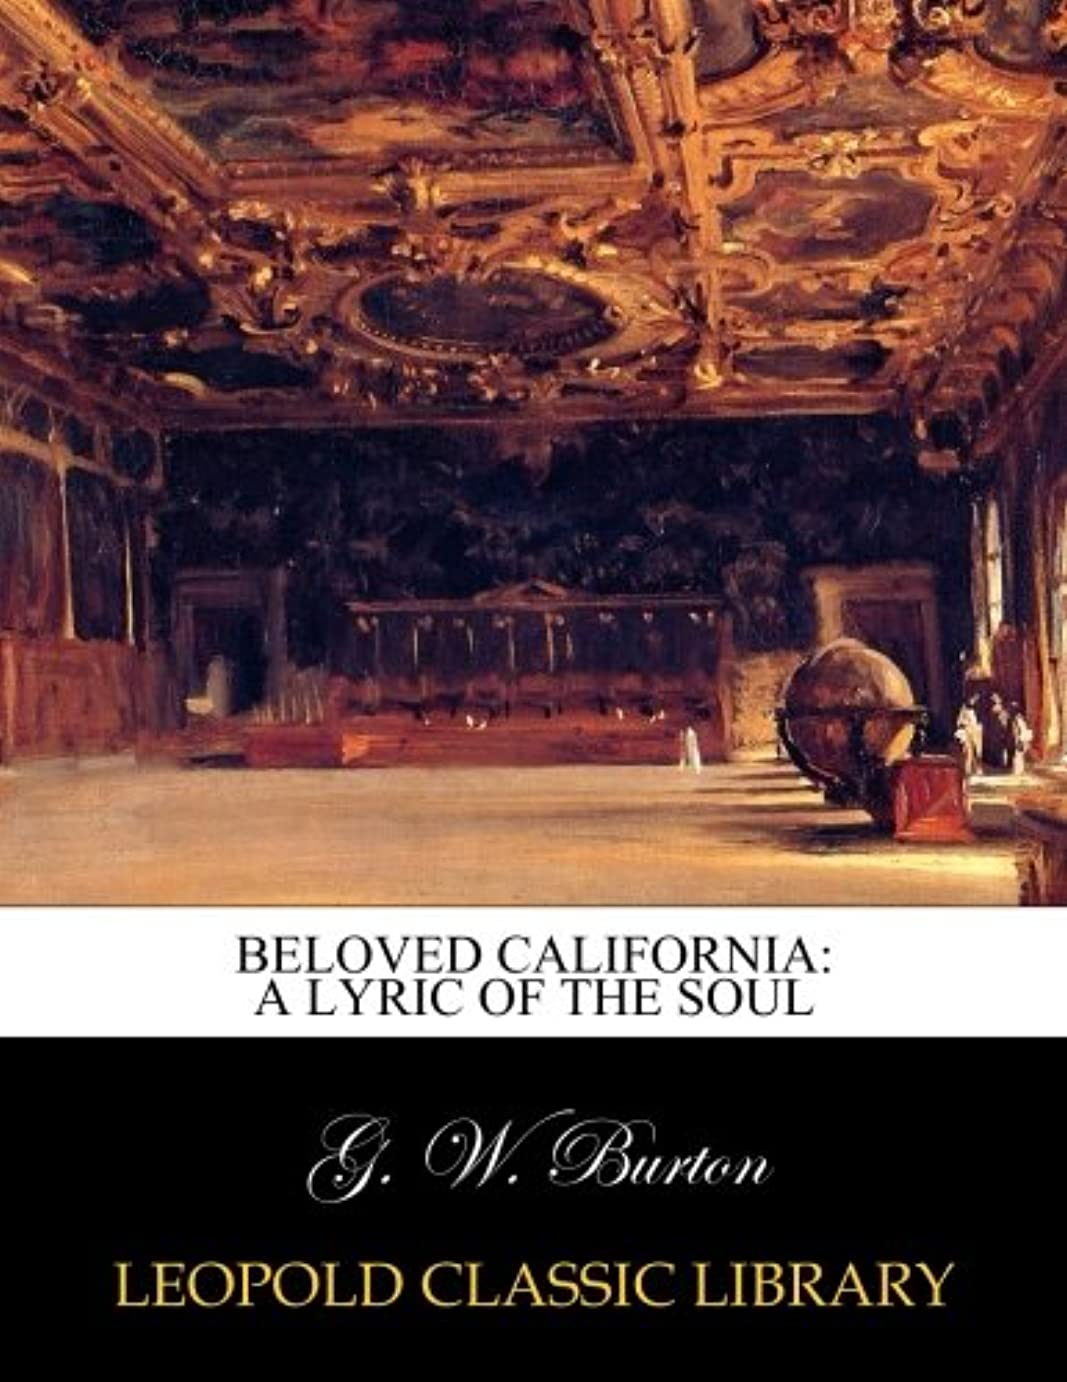 難民北西ビジターBeloved California: a lyric of the soul